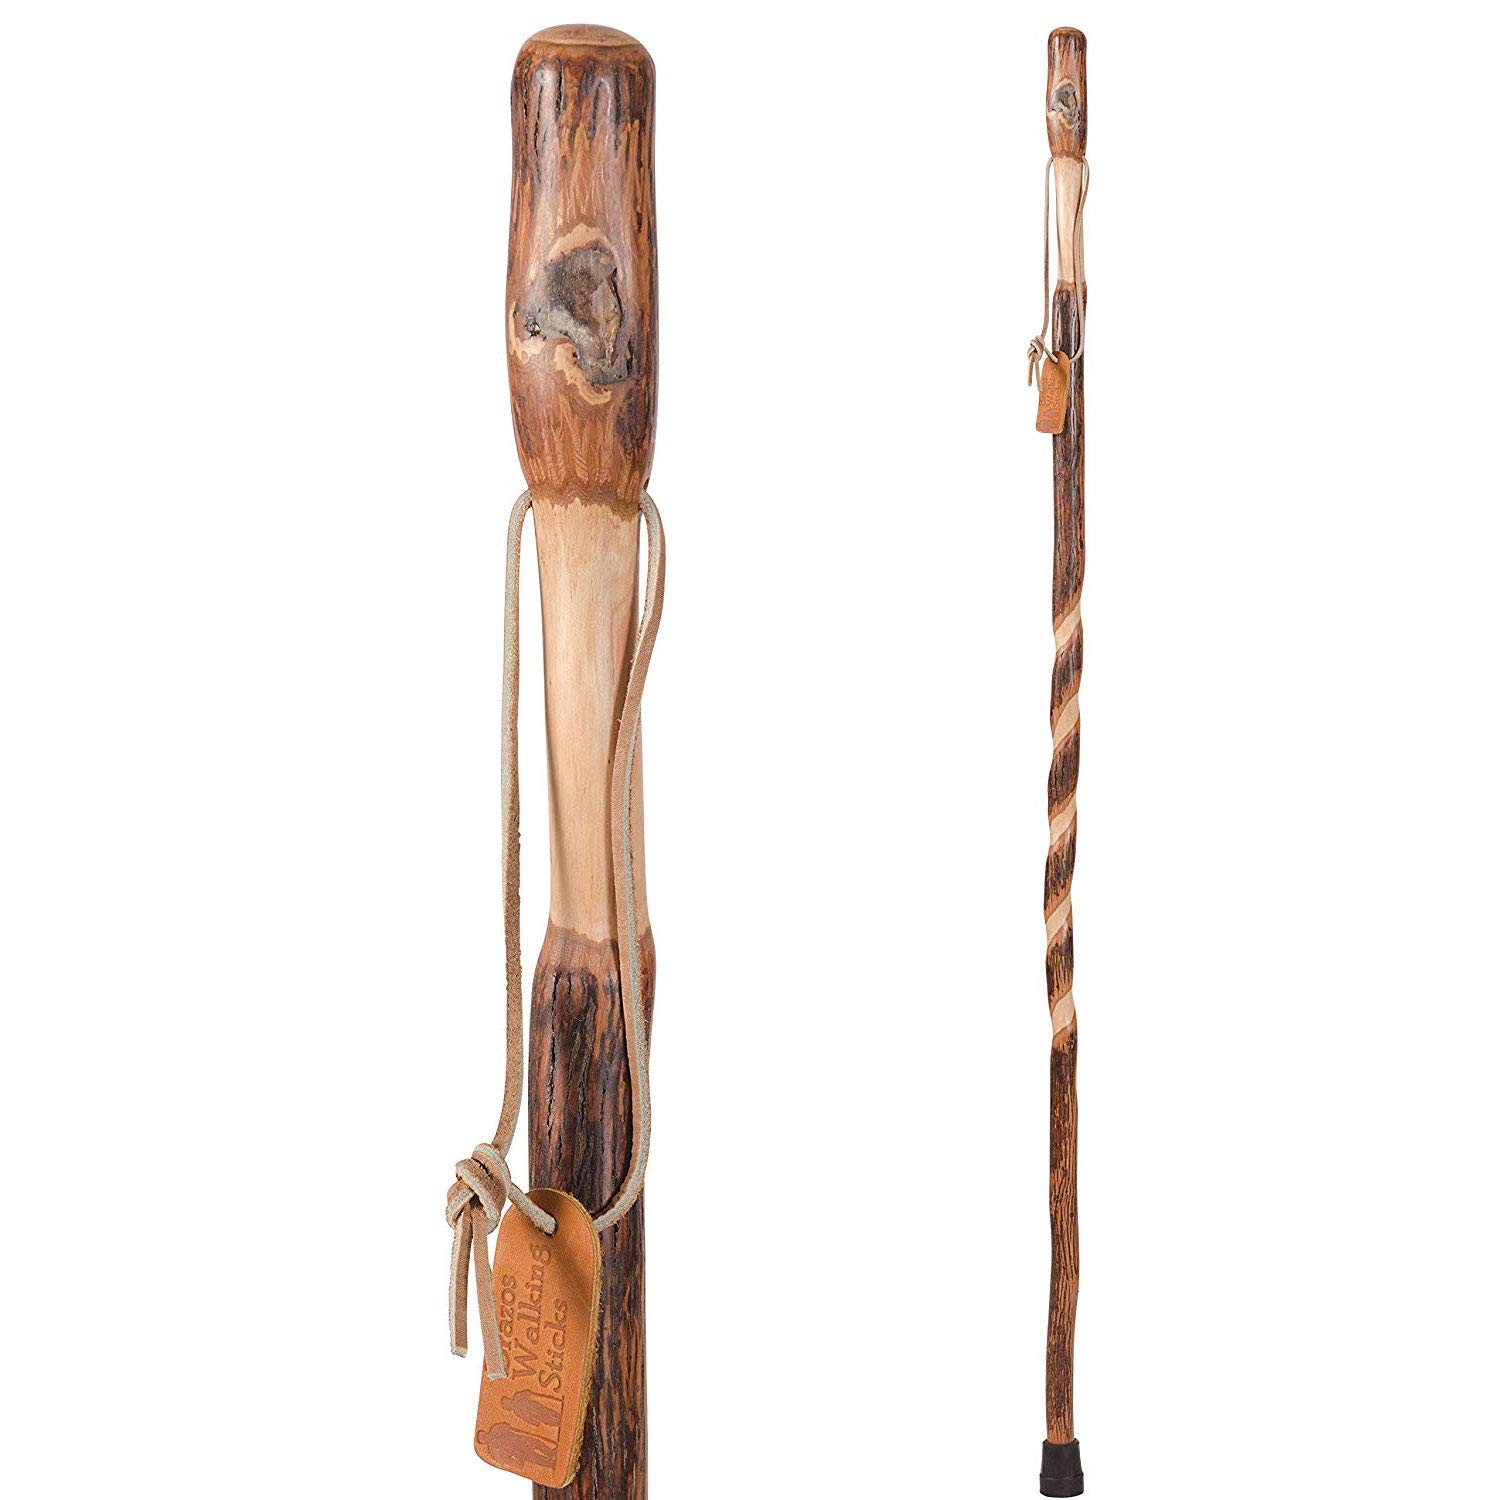 Brazos Trekking Pole Hiking Stick for Men and Women Handcrafted of Lightweight Wood and made in the USA, Hickory, 55 Inches